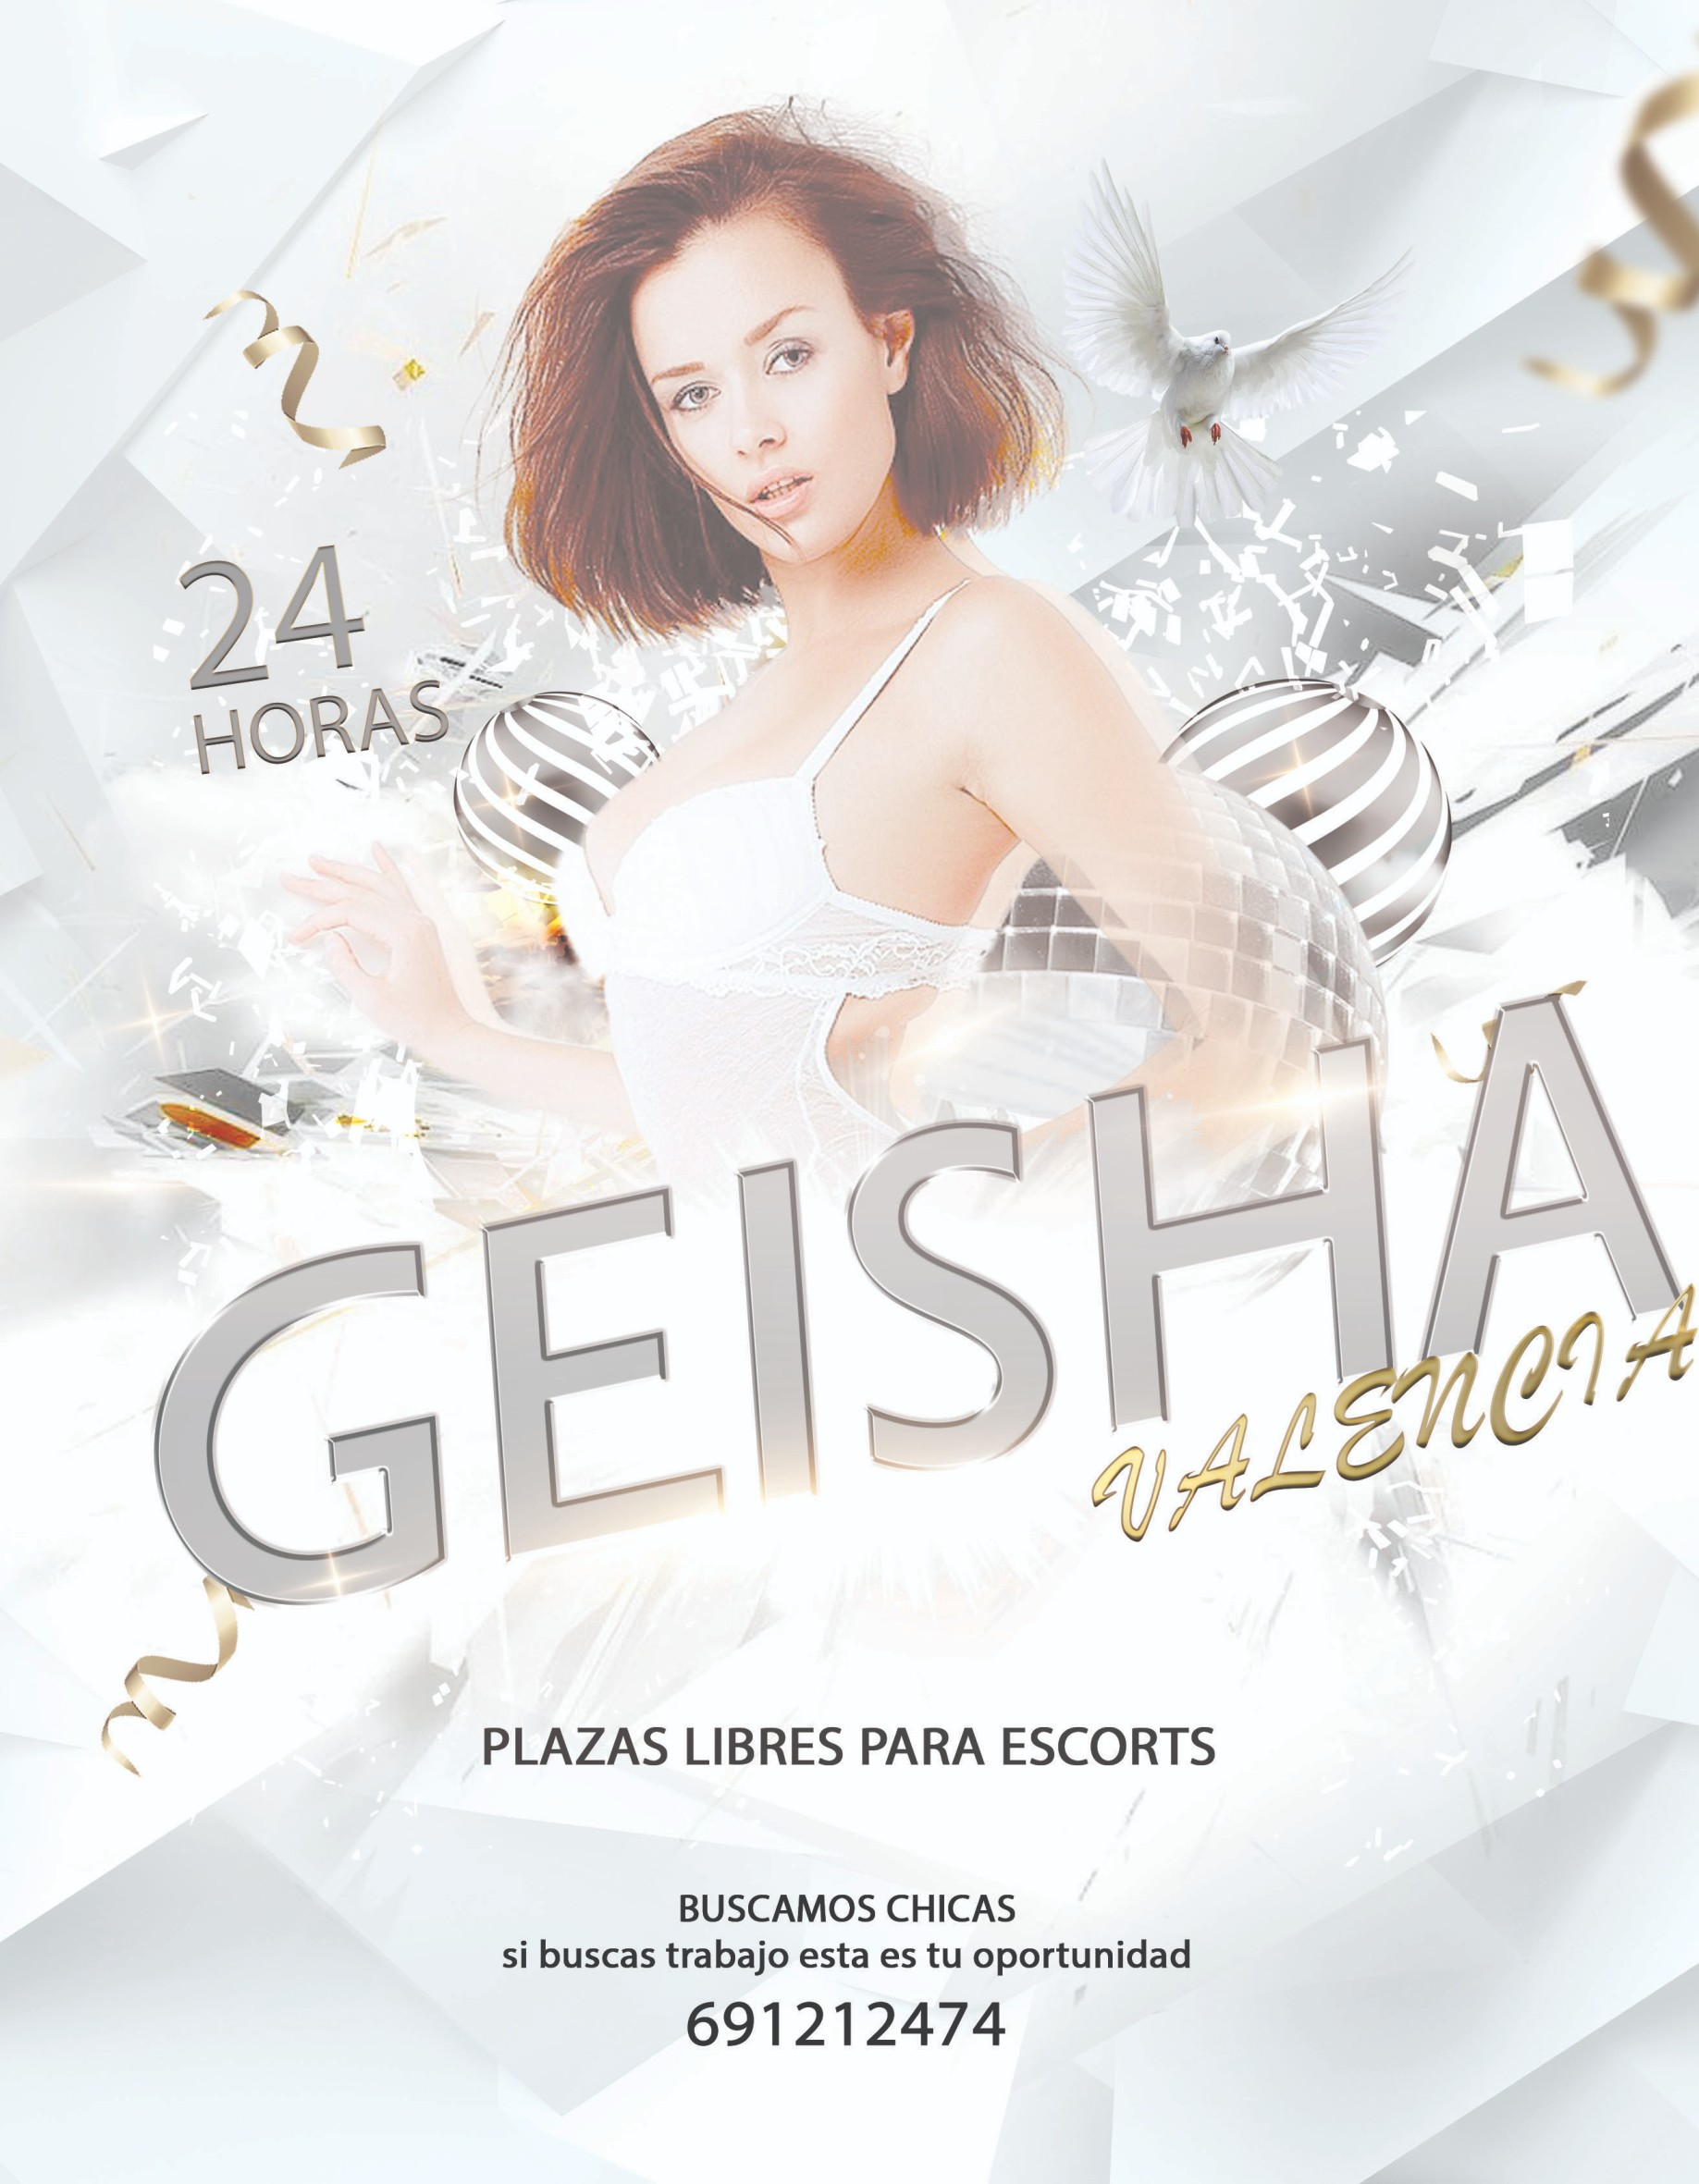 PLAZAS DISPONIBLES, GEISHA TE ESPERA!!